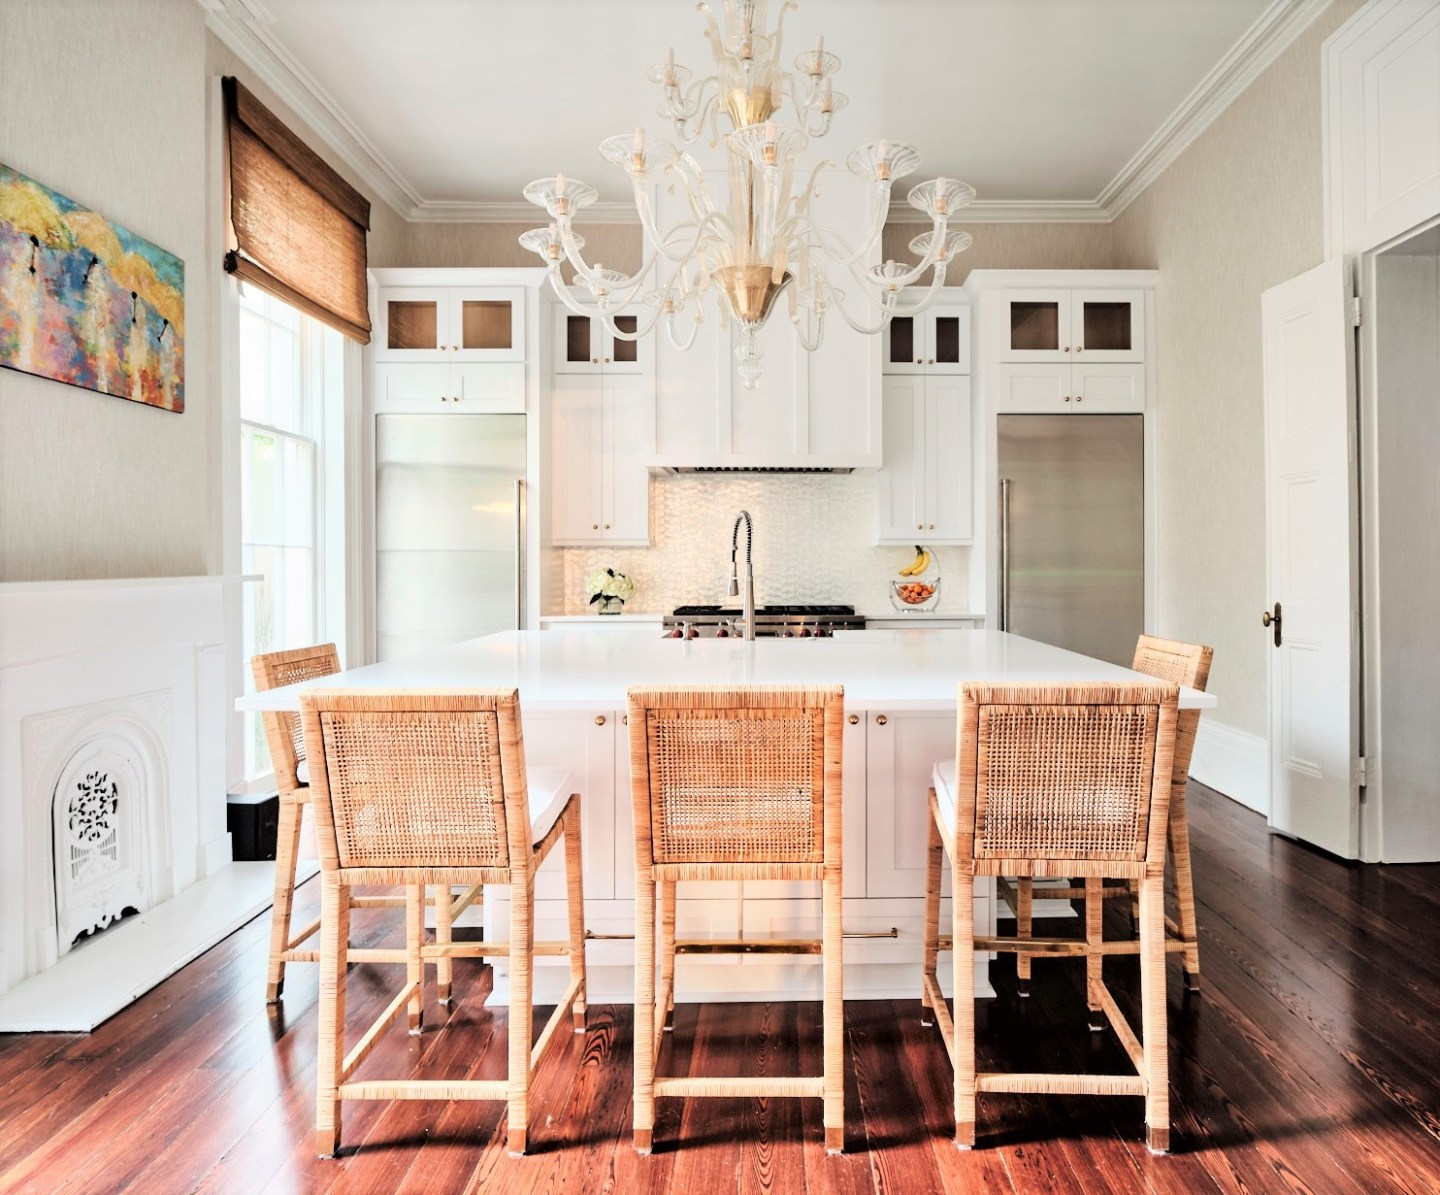 St-Charles-Kitchen-Crop Tips To Consider When Remodeling a Kitchen from New Orleans Designer, April Vogt